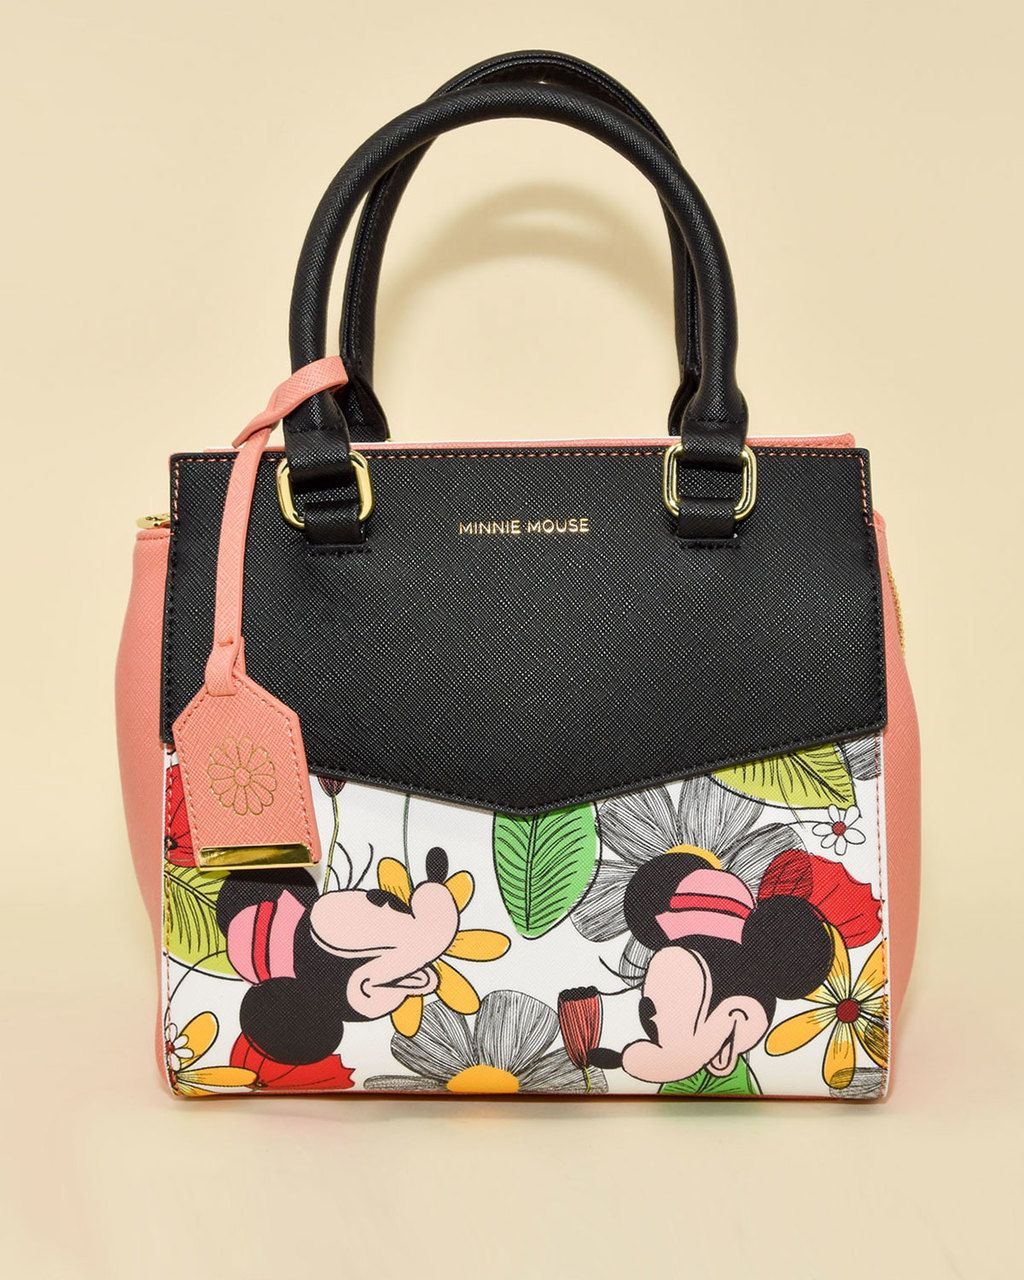 f11fc80376 Loungefly x Disney s Vintage Minnie Mouse Floral Handbag in 2019 ...